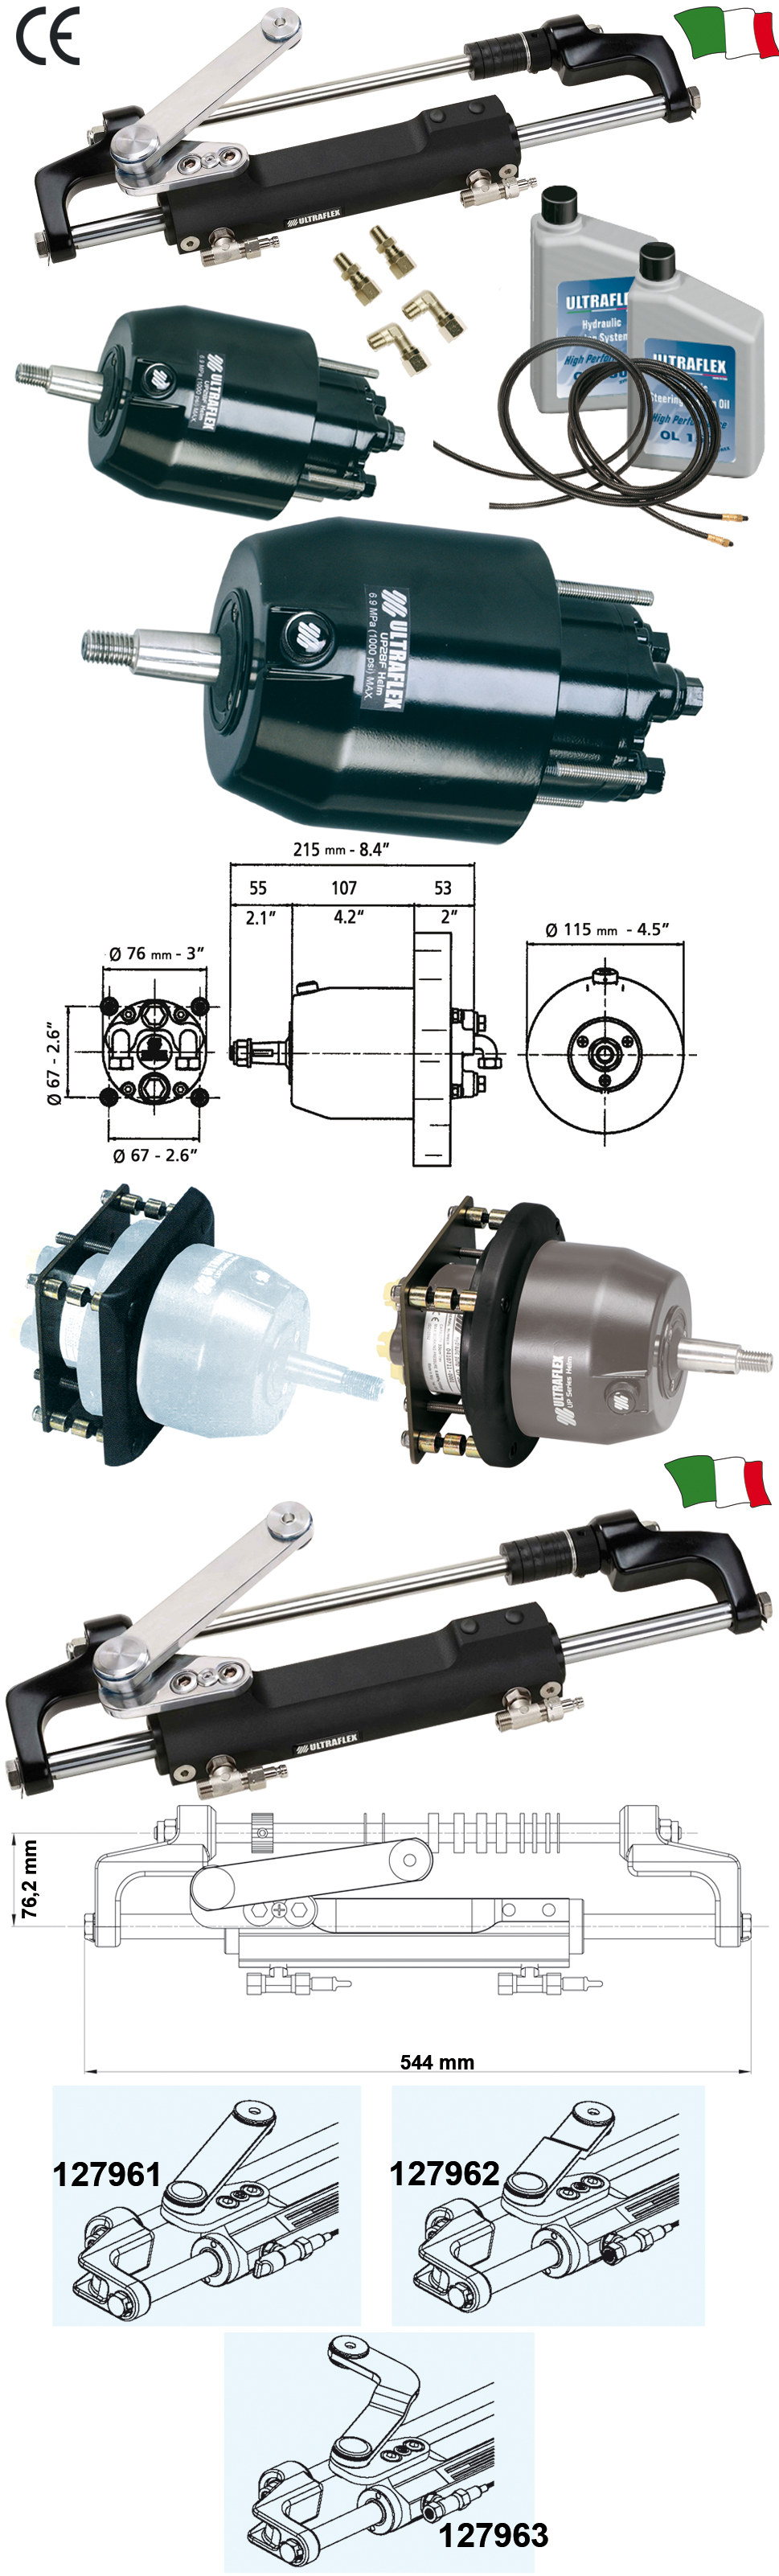 ULTRAFLEX HYDRAULIC STEERING SYSTEM FOR OUTBOARD ENGINES UP